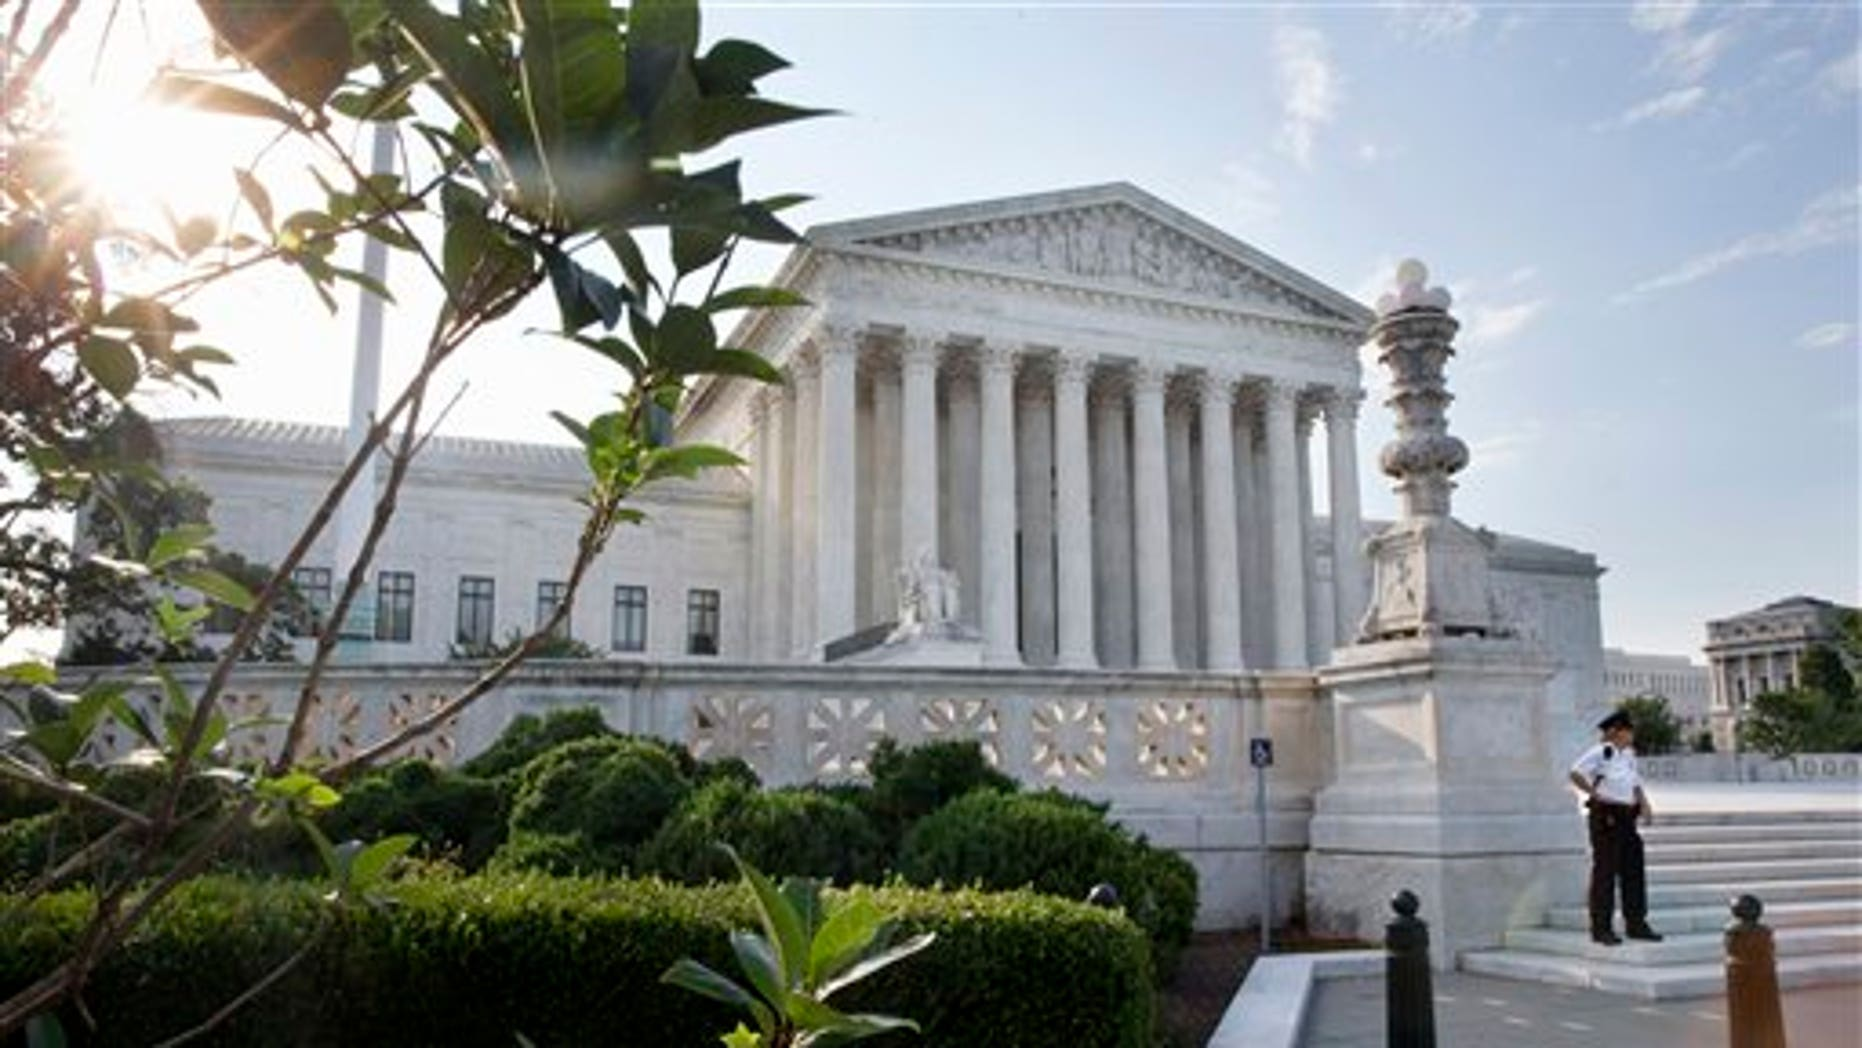 FILE -- June 25, 2015: Security guard in front of the Supreme Court in Washington. (AP Photo/Jacquelyn Martin)